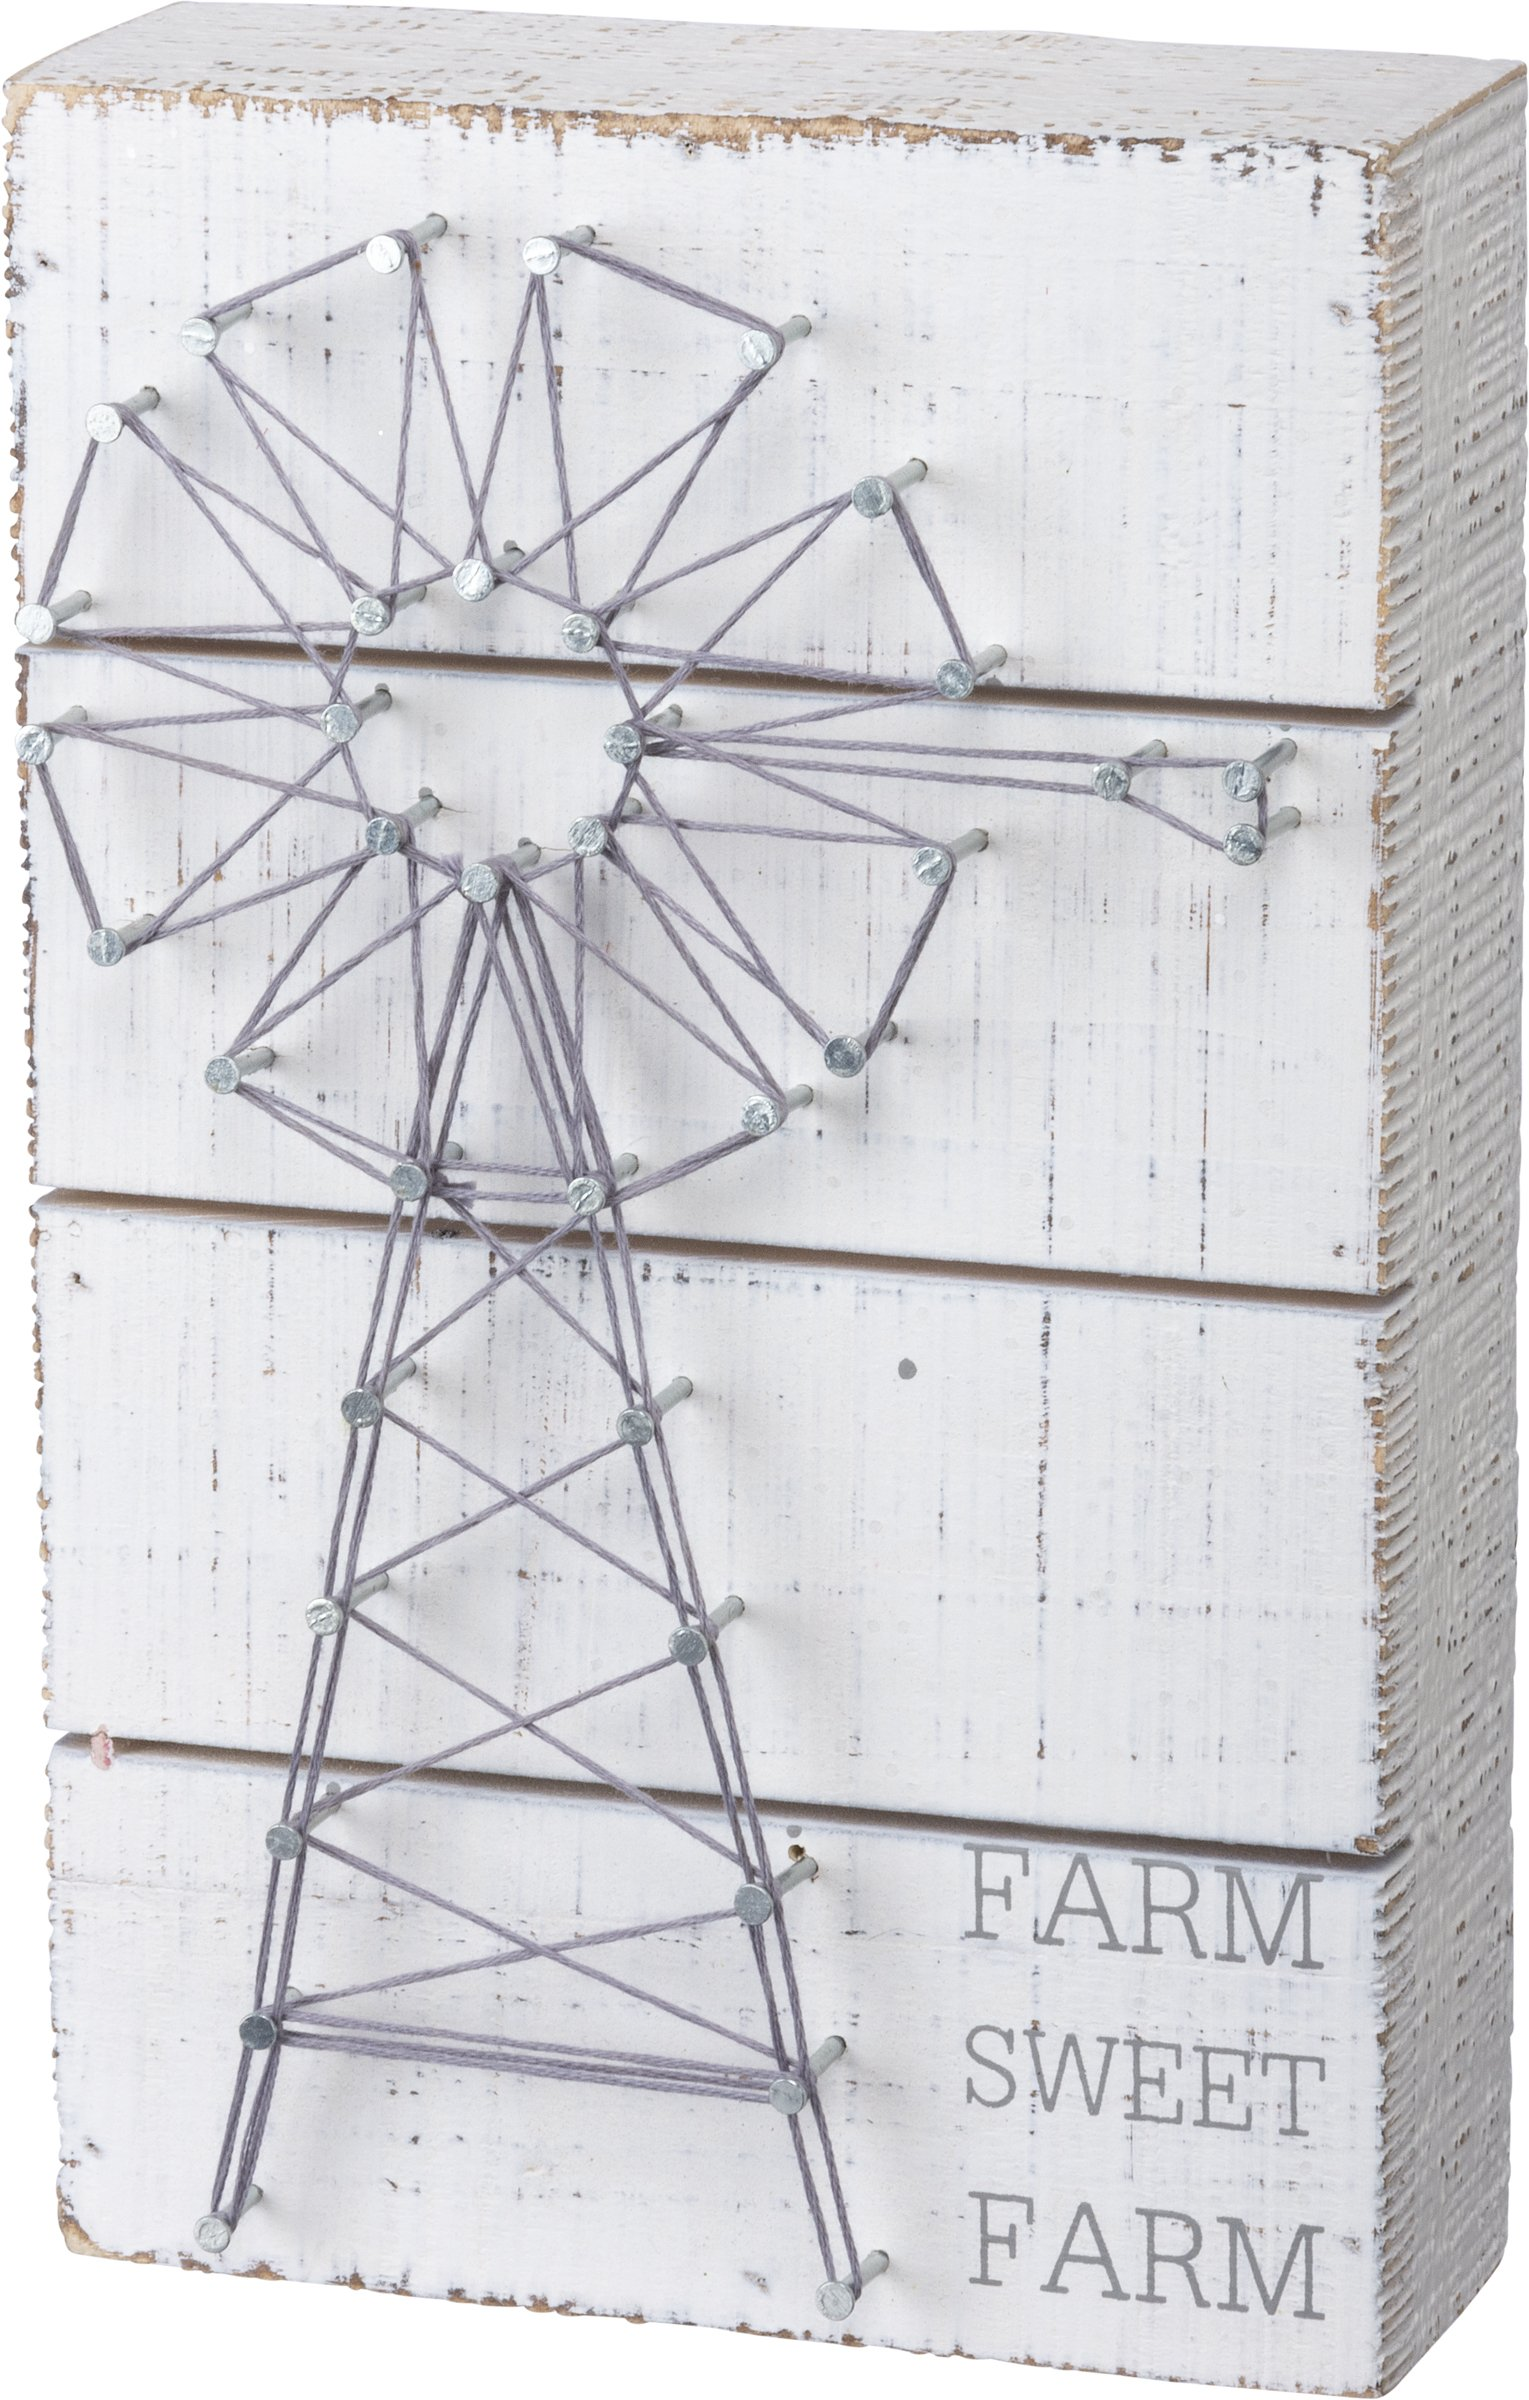 String art sweet farm #stringart